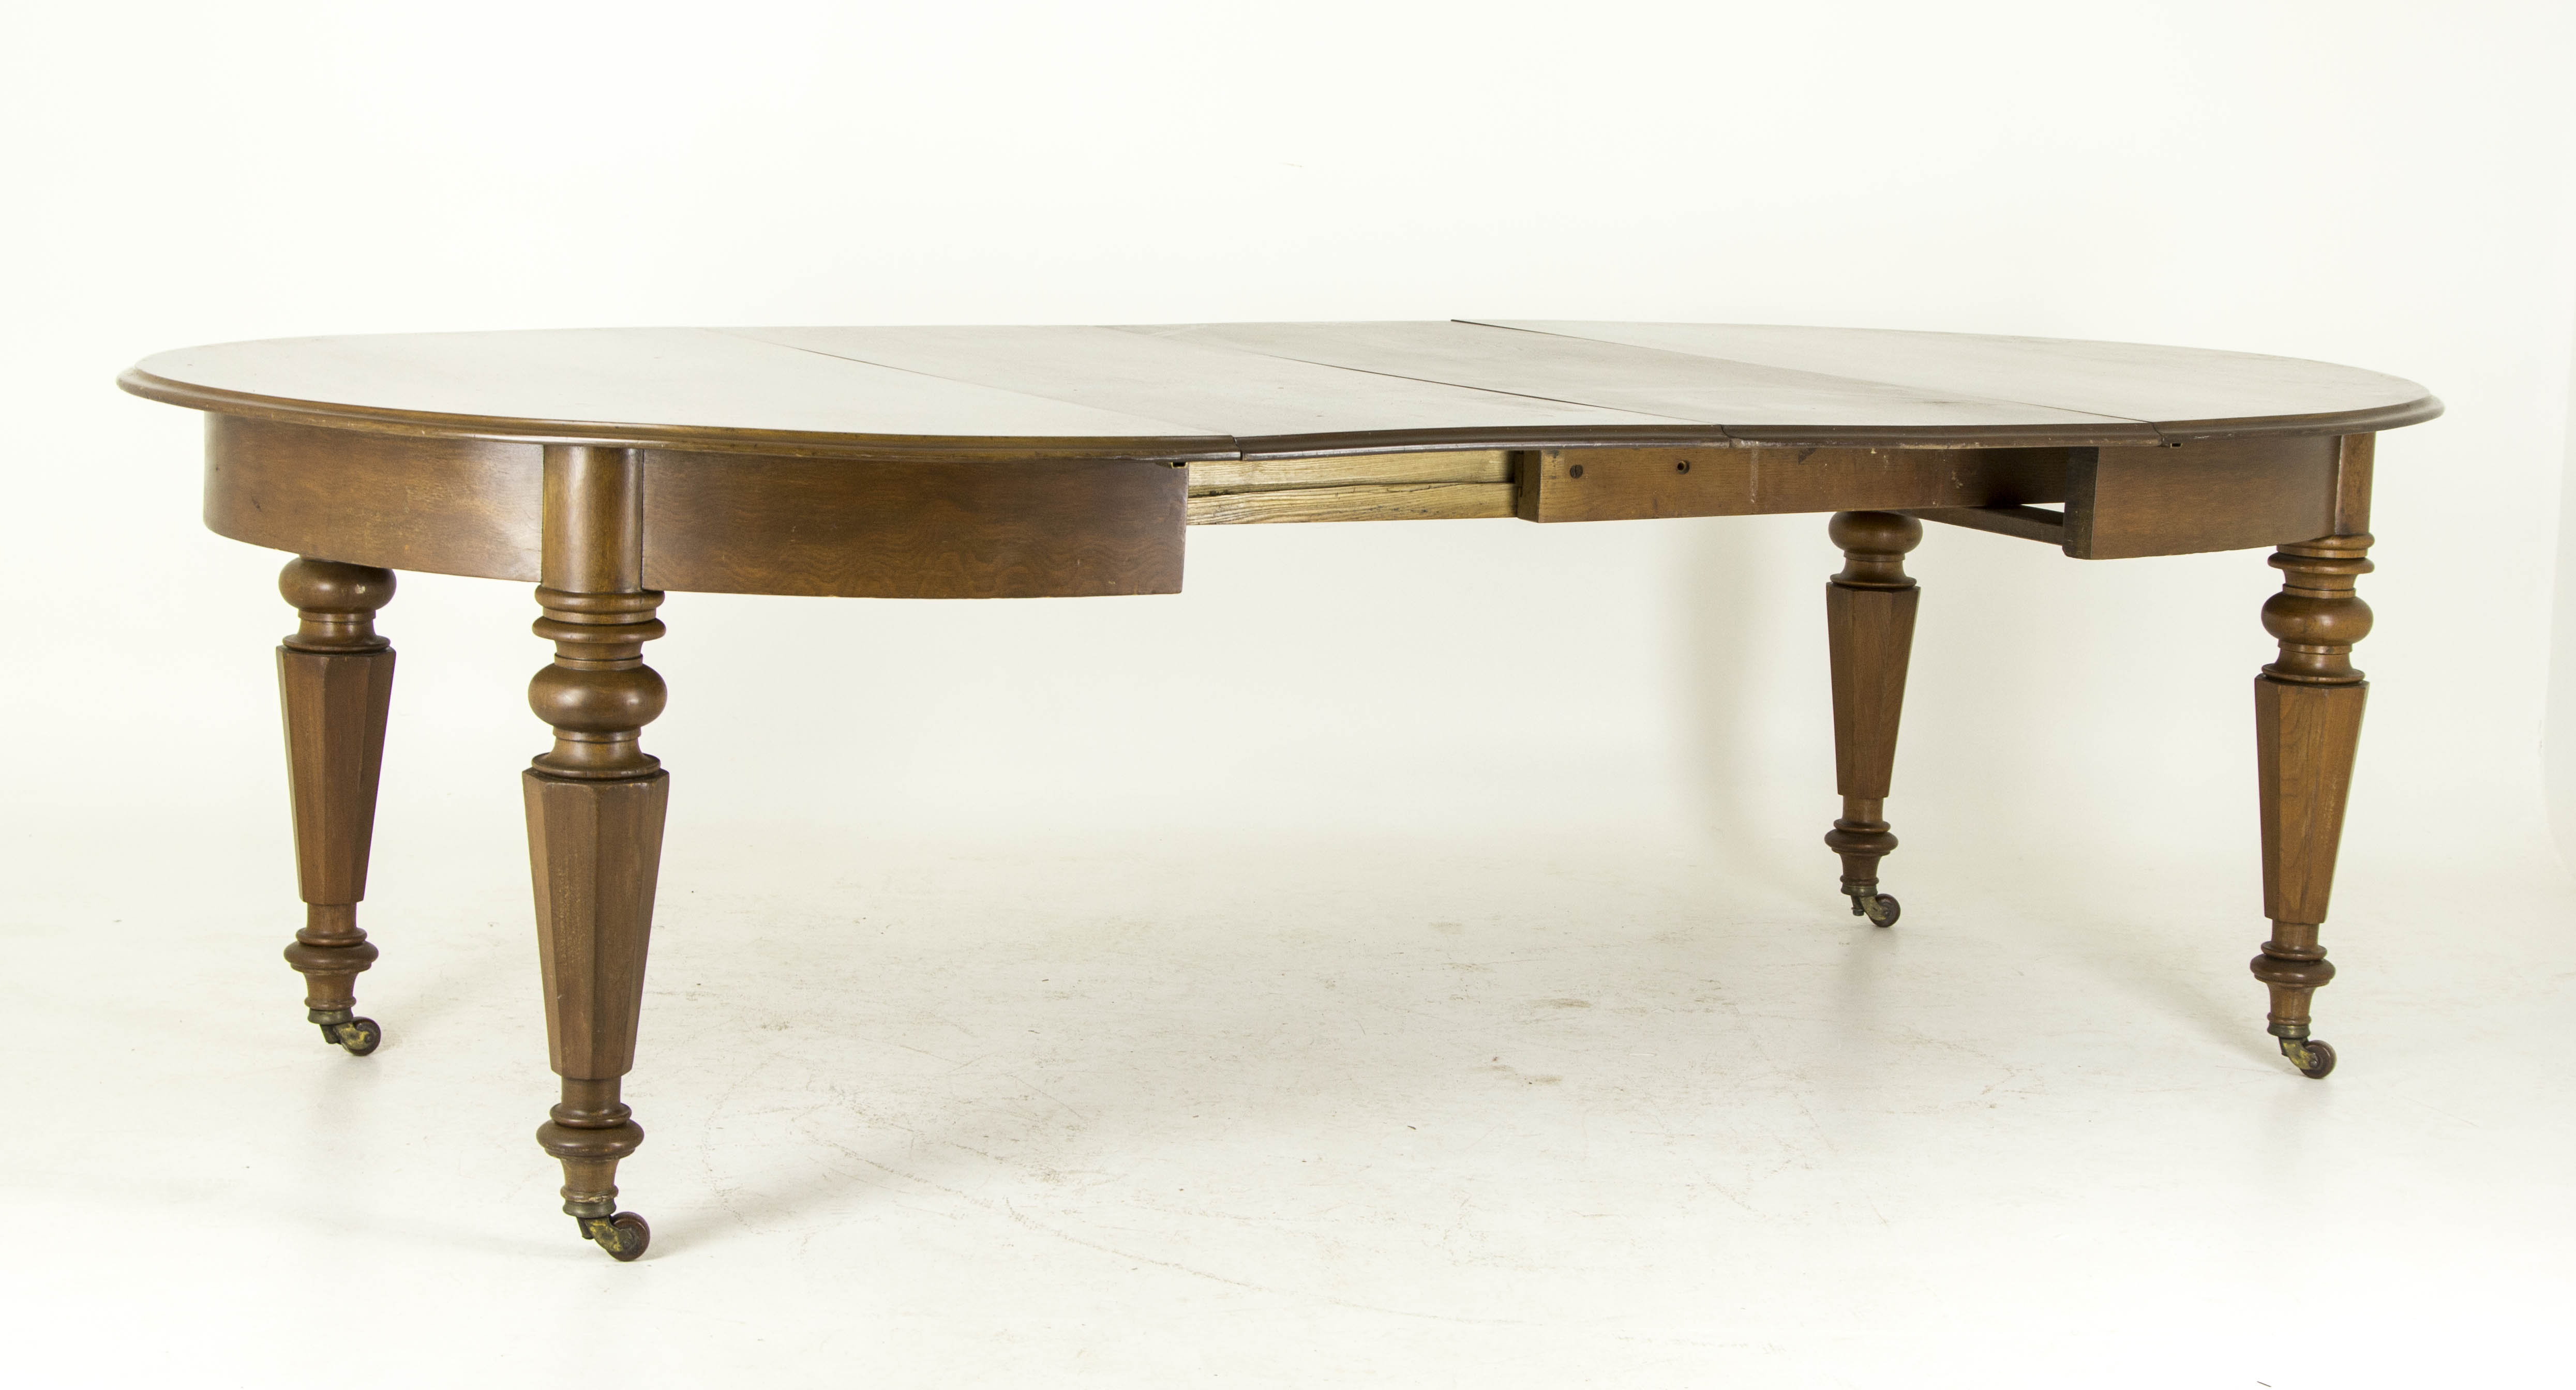 Antique dining table walnut dining table scotland 1870 b632 antique walnut dining table dzzzfo